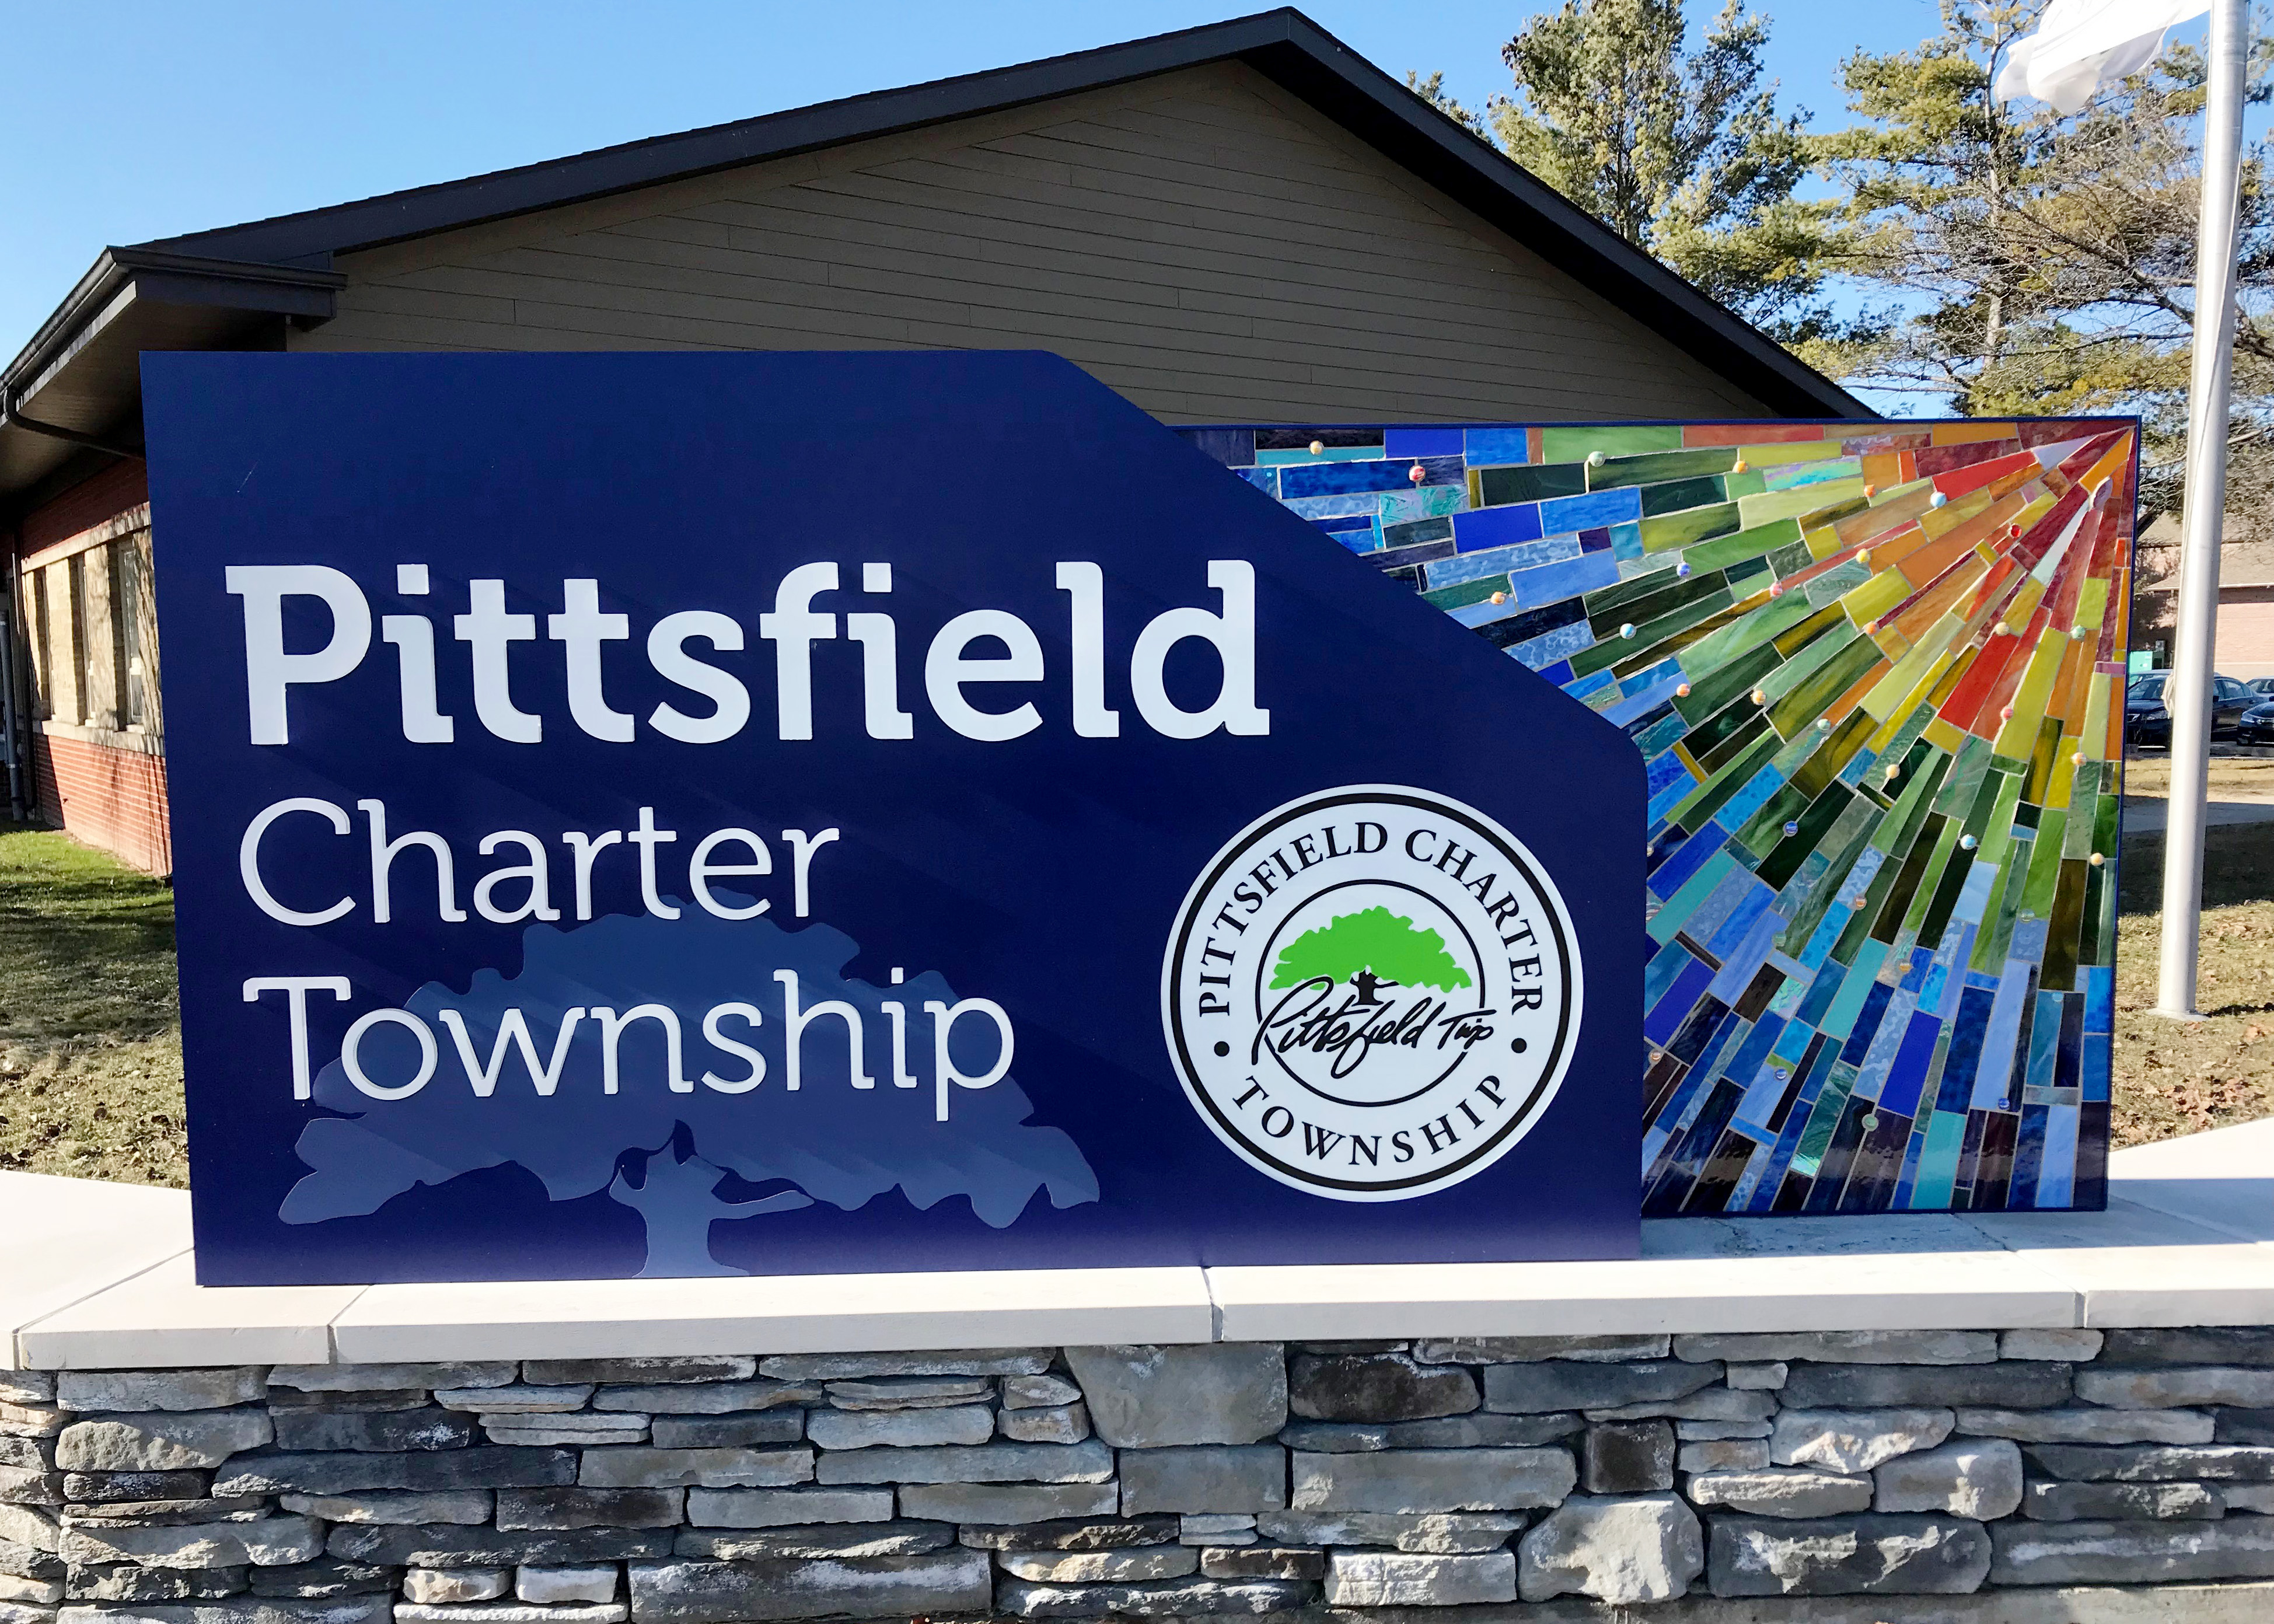 Pittsfield Township Gateway Sign